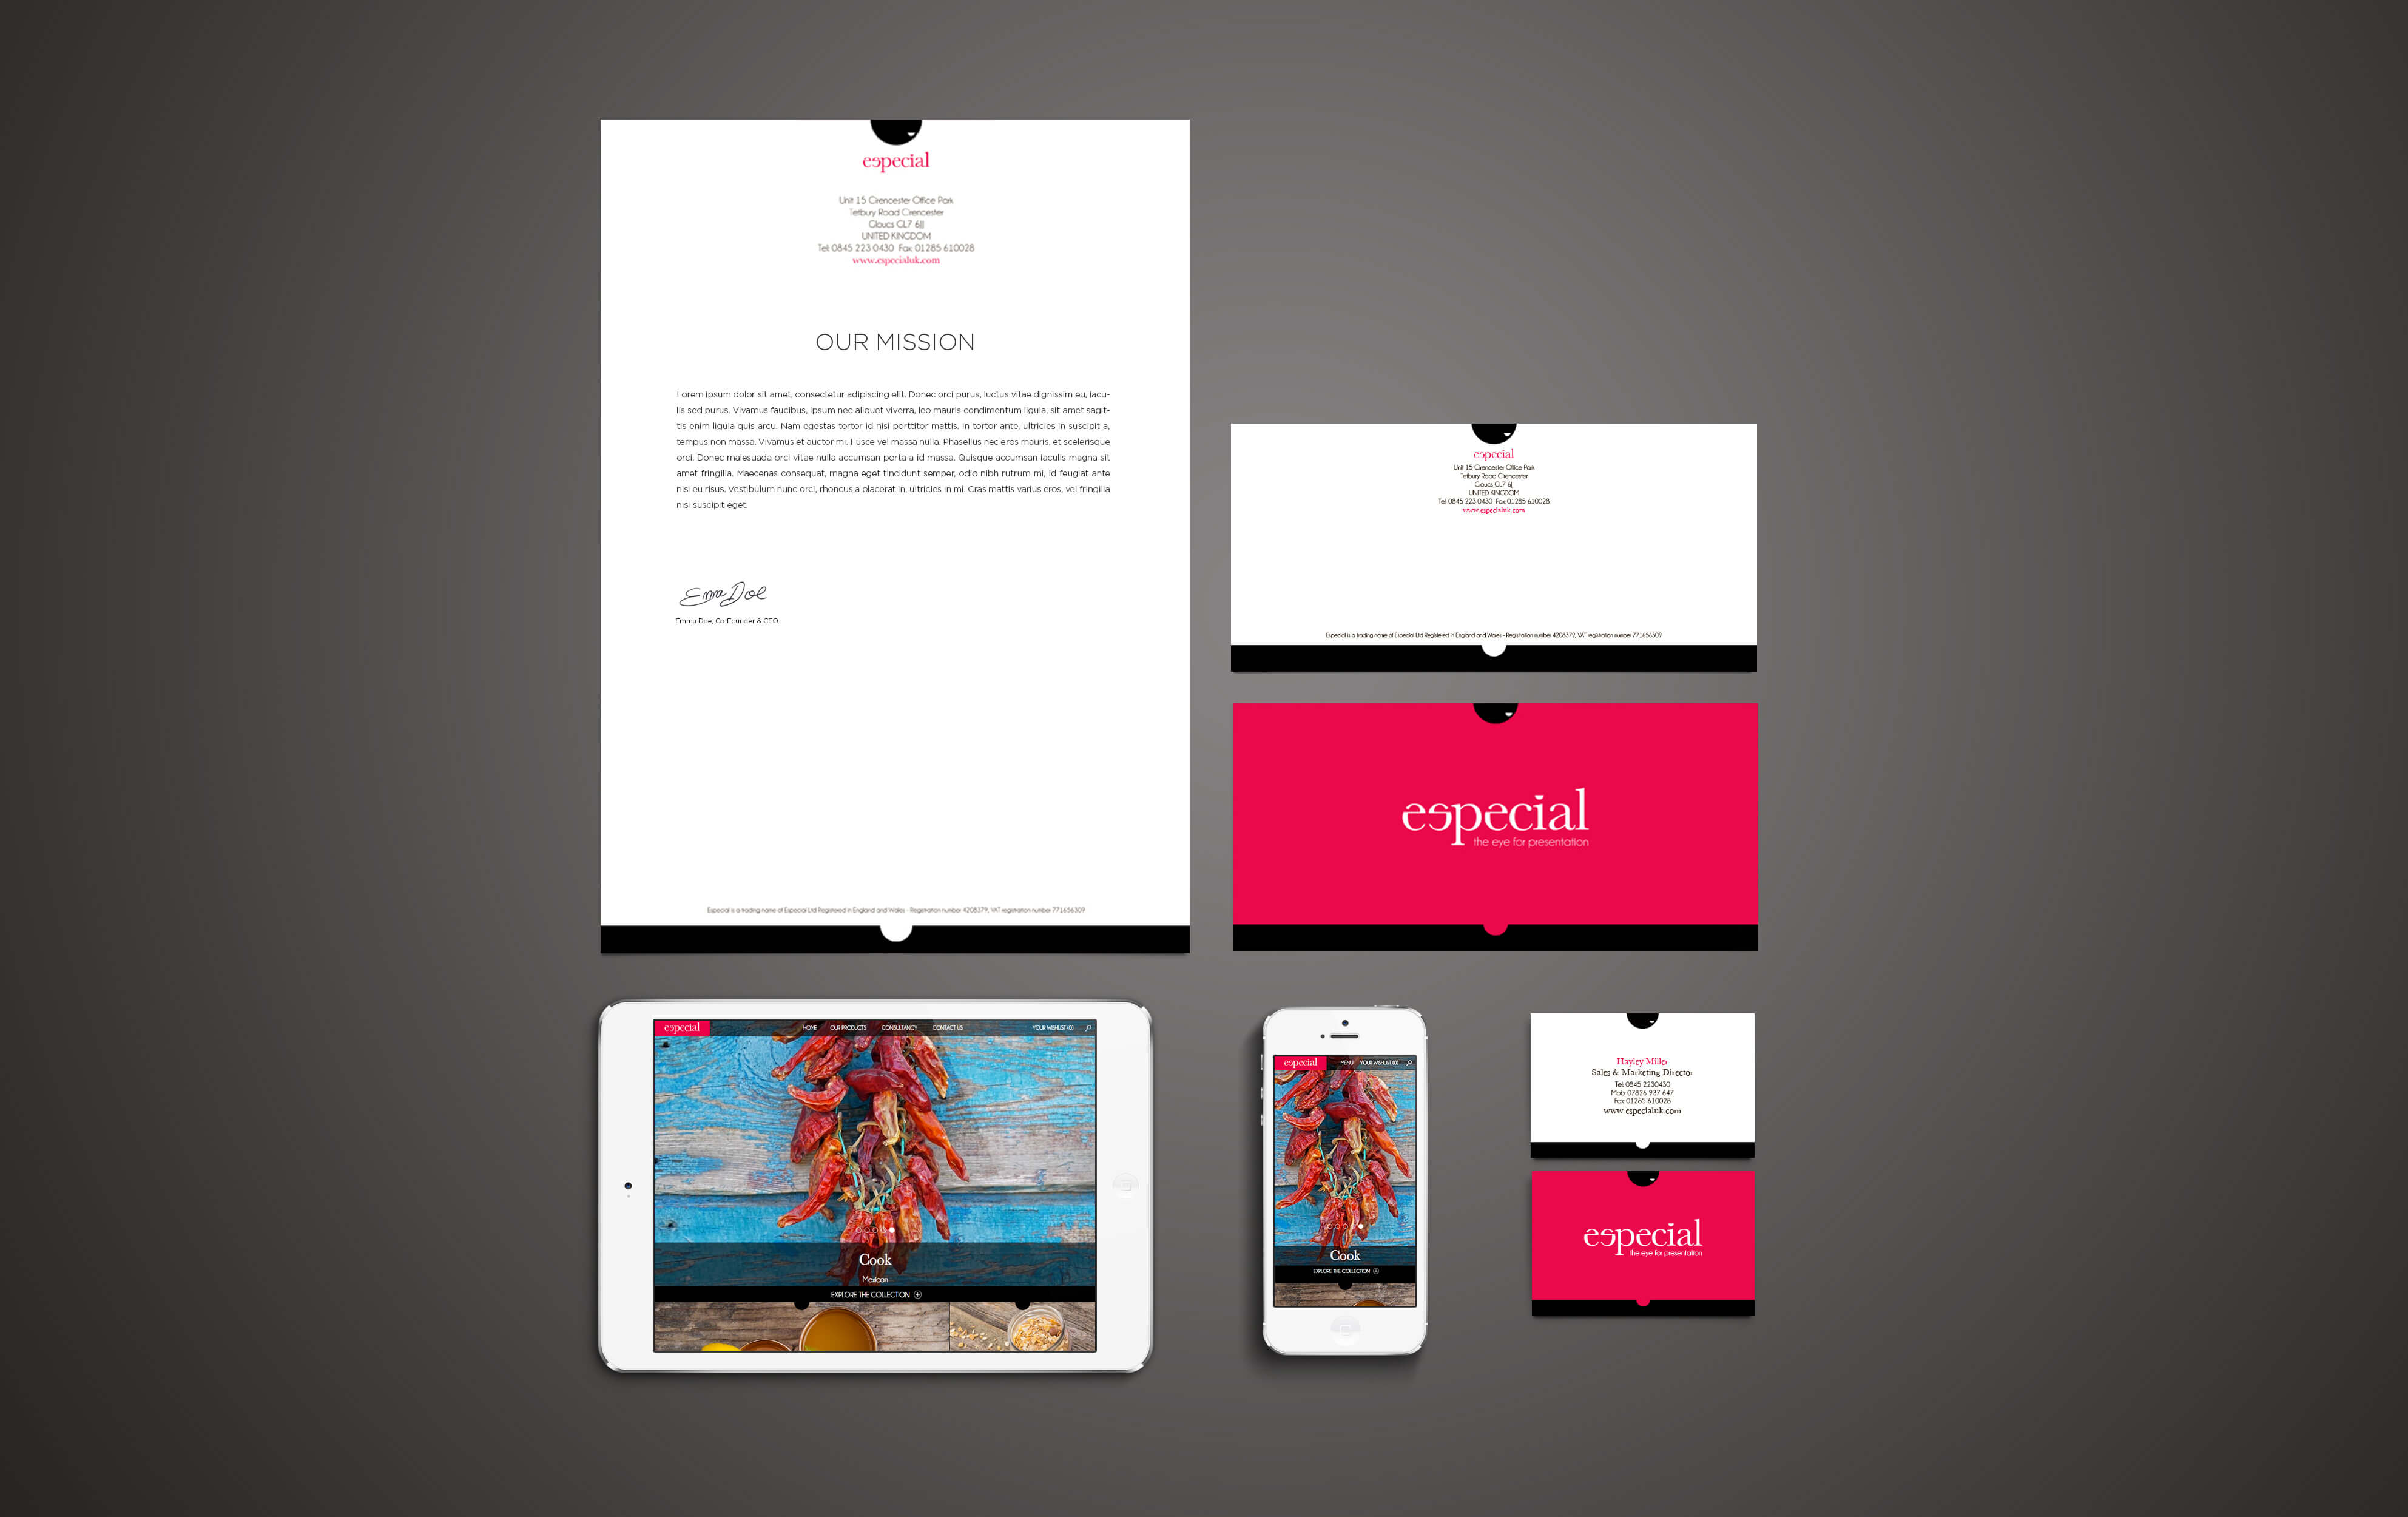 A shot from above showing the Especial website and stationery